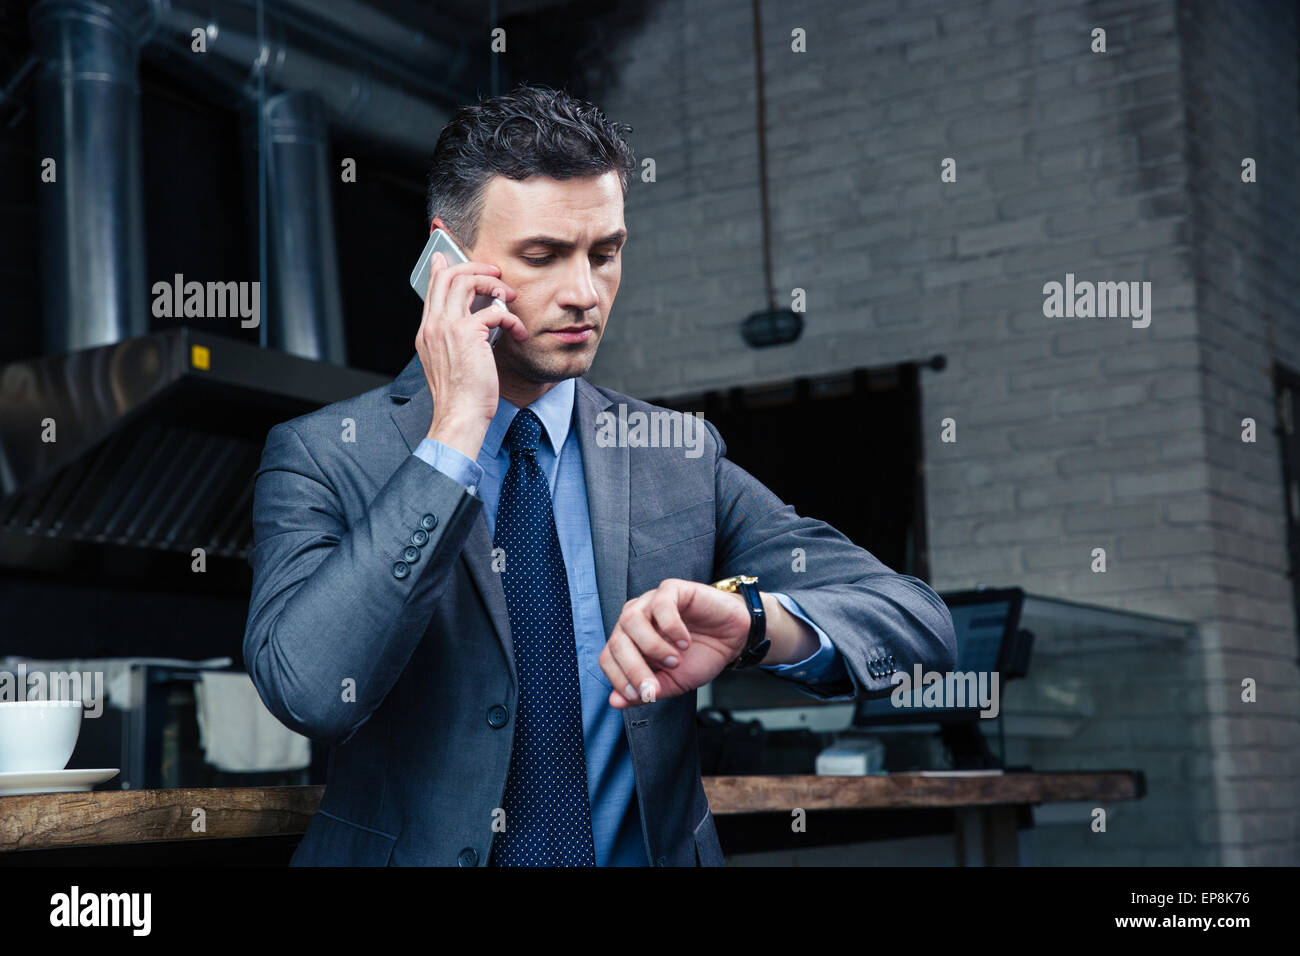 Confident businessman speaking on the phone and looking on the wristwatch in cafe Stock Photo